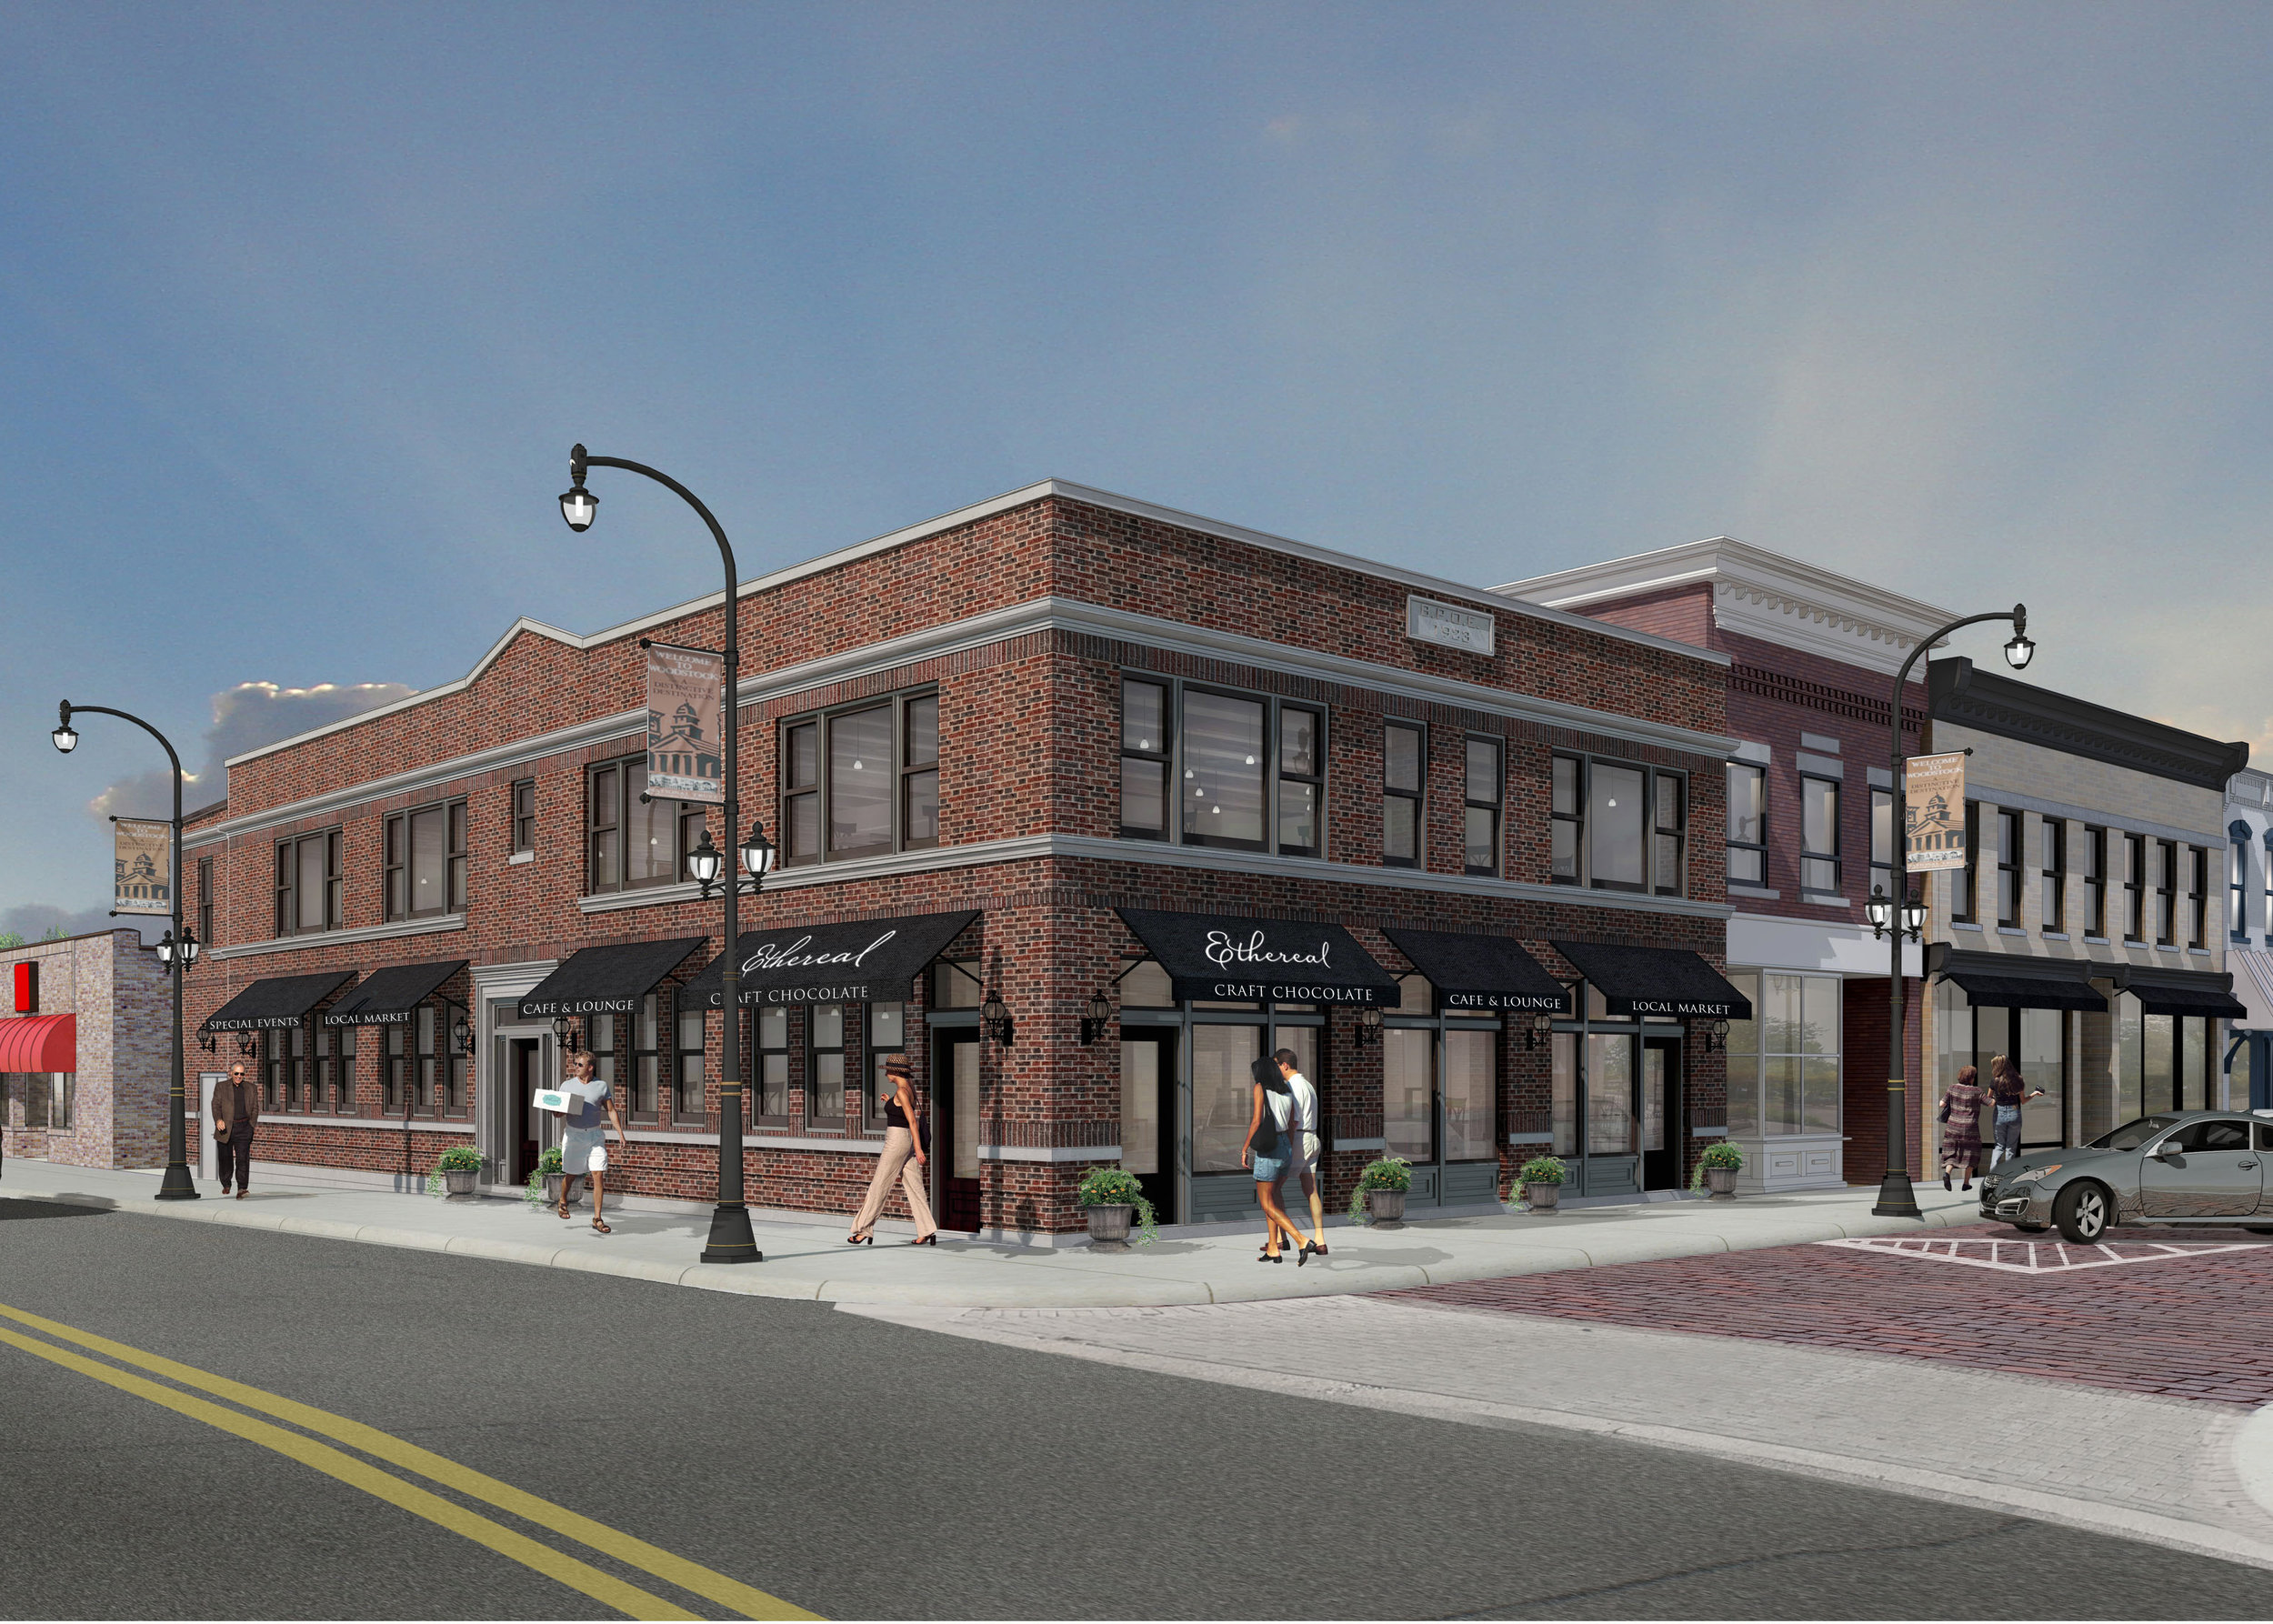 140cass street exterior color rendering-streetscape2a.jpg